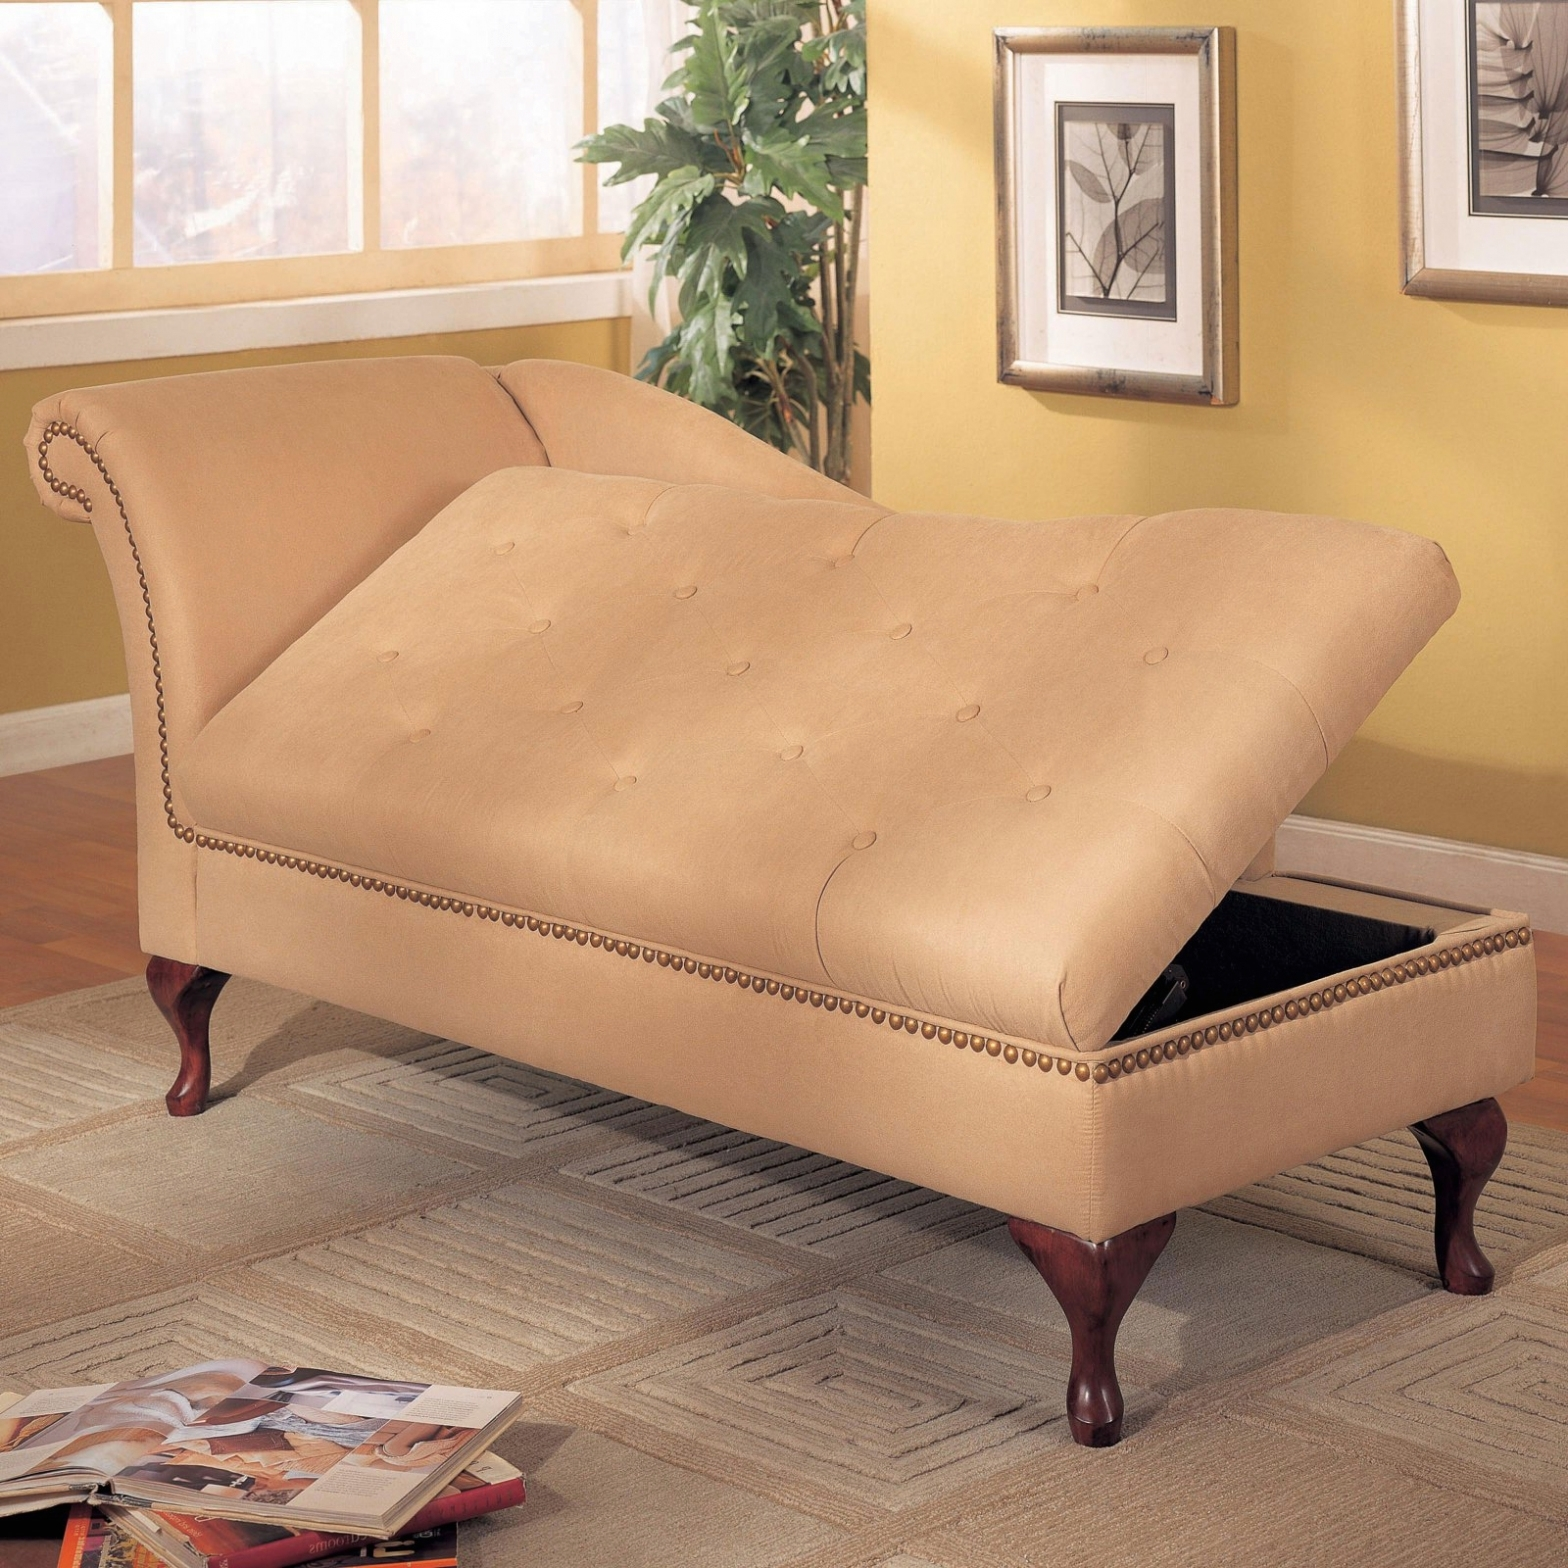 Small Chaise Lounge Chairs For Bedroom For Most Recently Released Home Decor: Small Bedroom Chaise Lounge Chairs • Lounge Chairs (View 7 of 15)